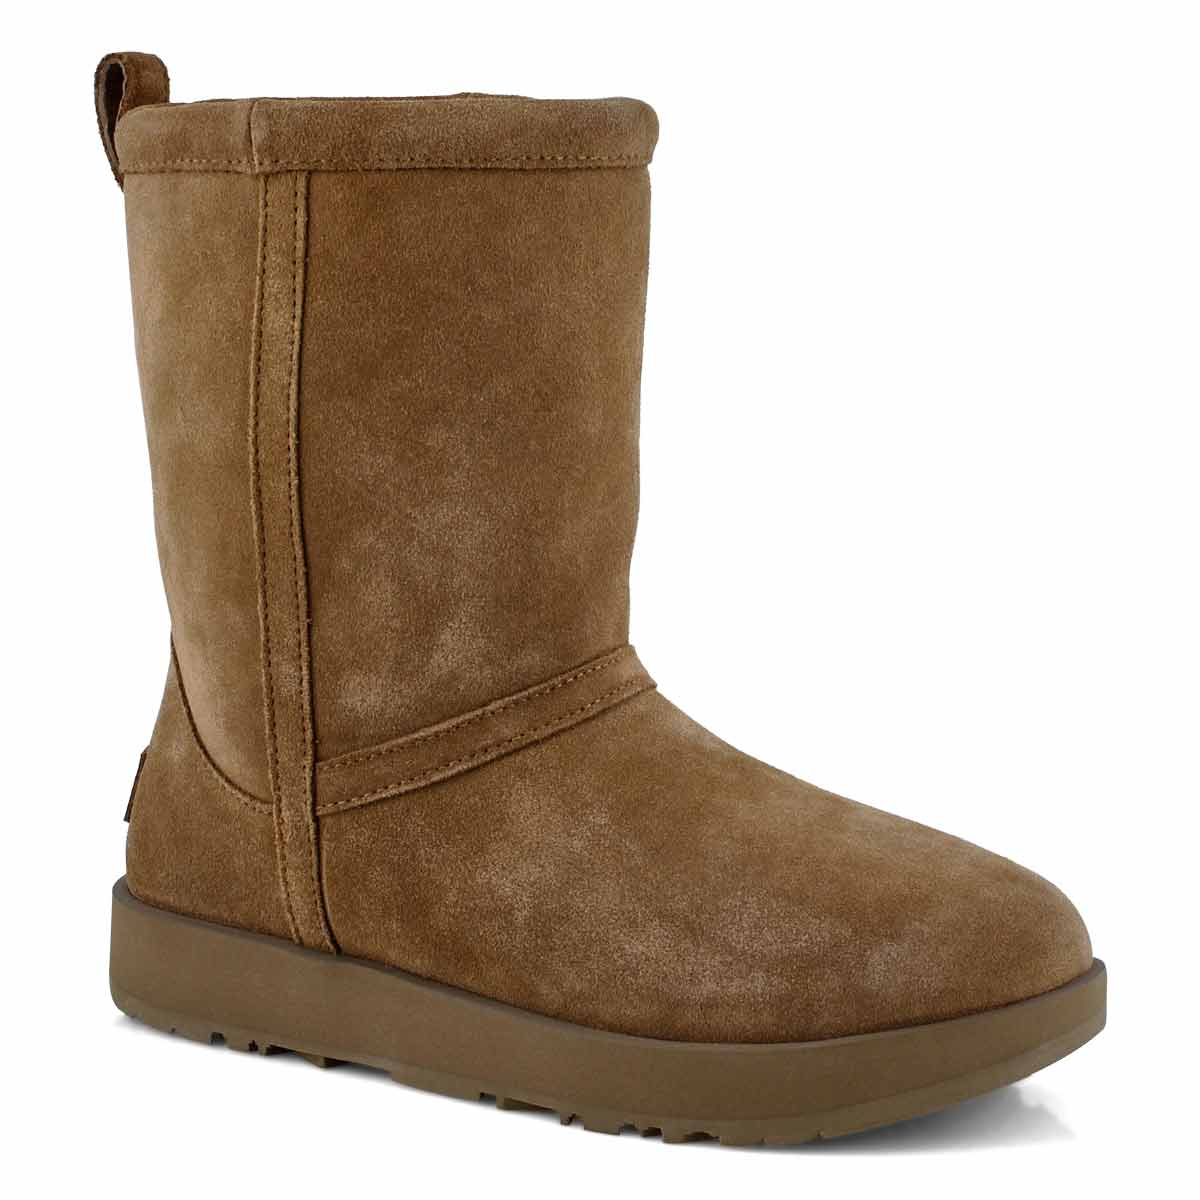 Lds Classic Short Waterproof ches boot